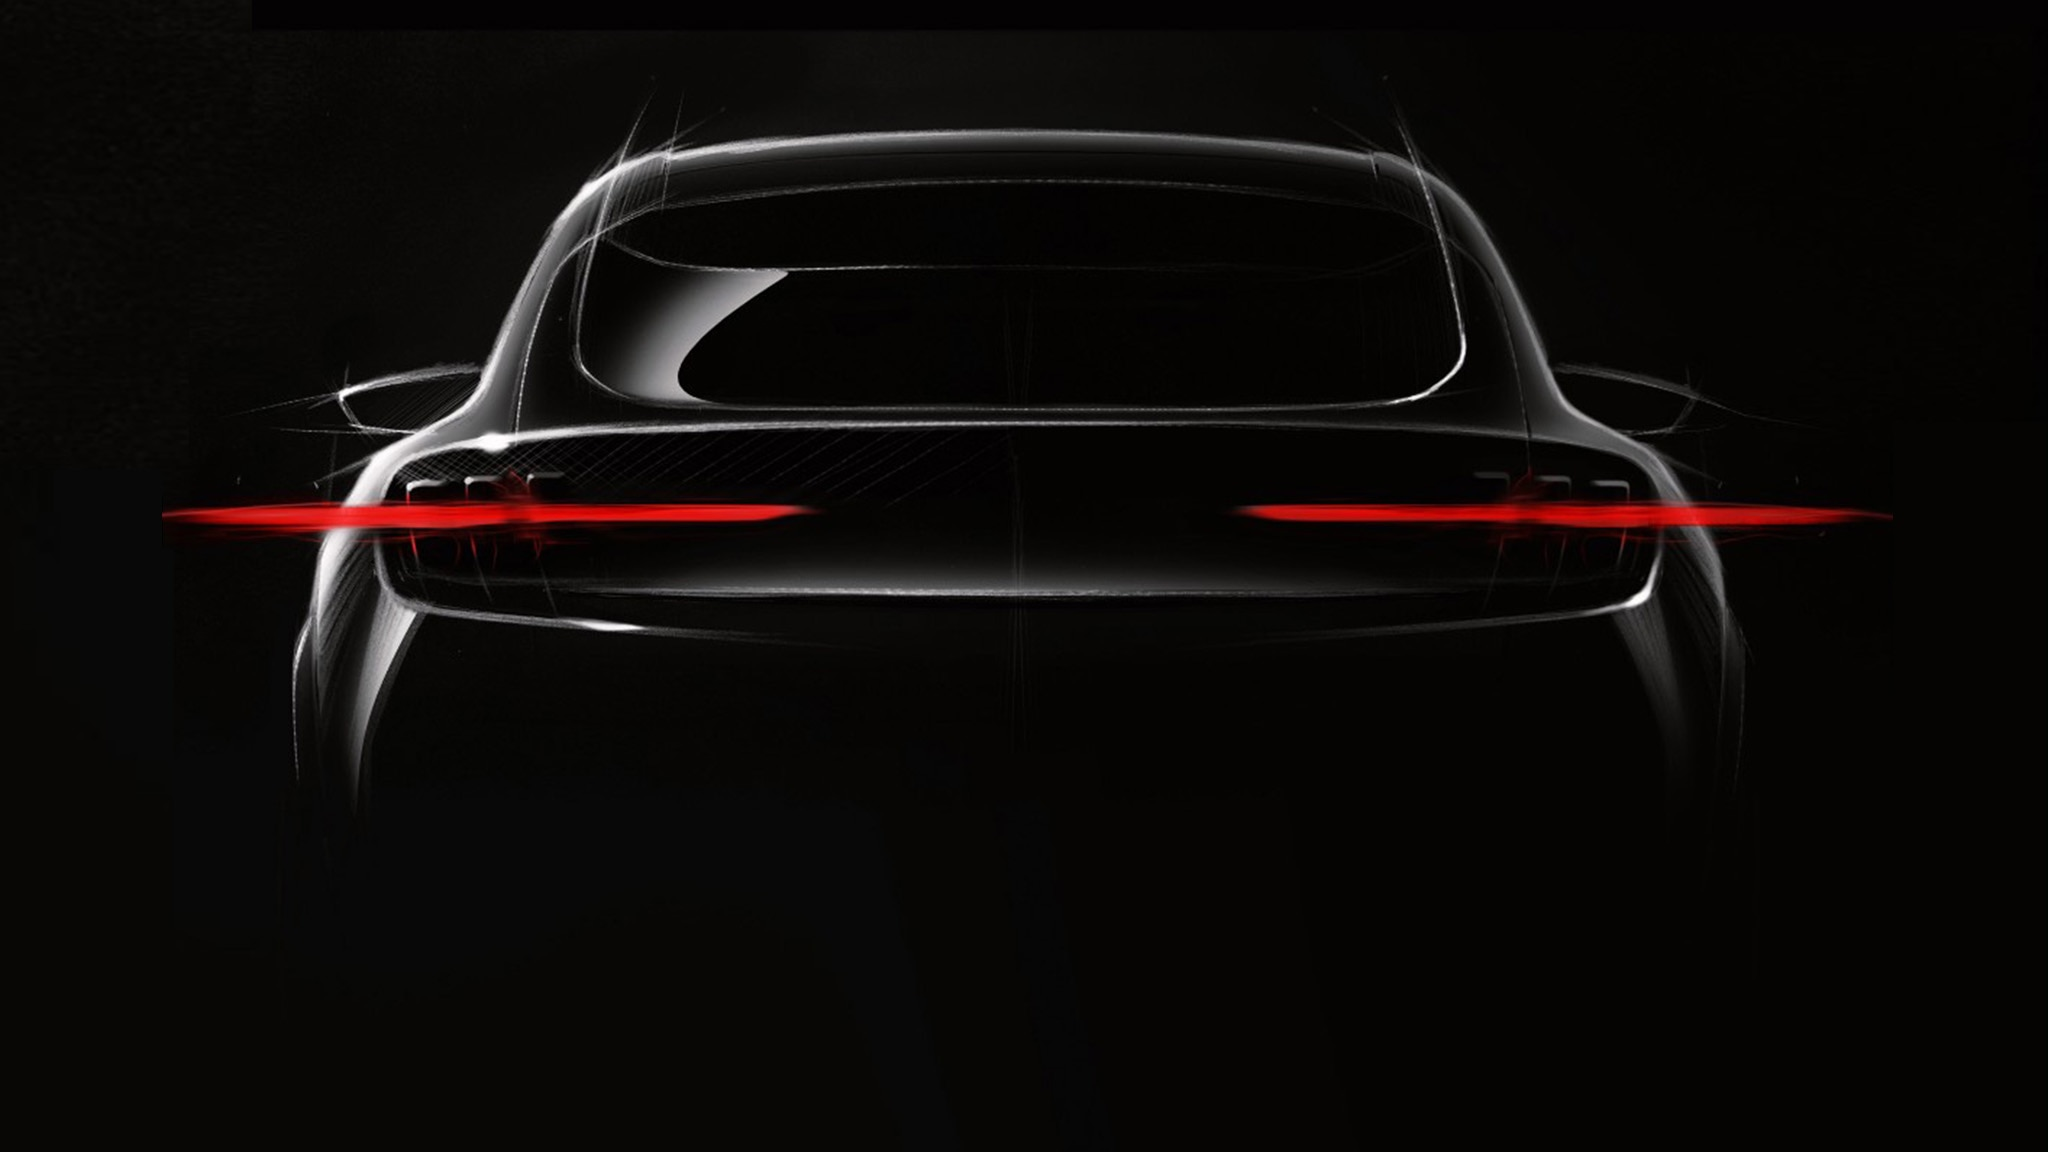 Ford Mustang Inspired Electric SUV Teaser